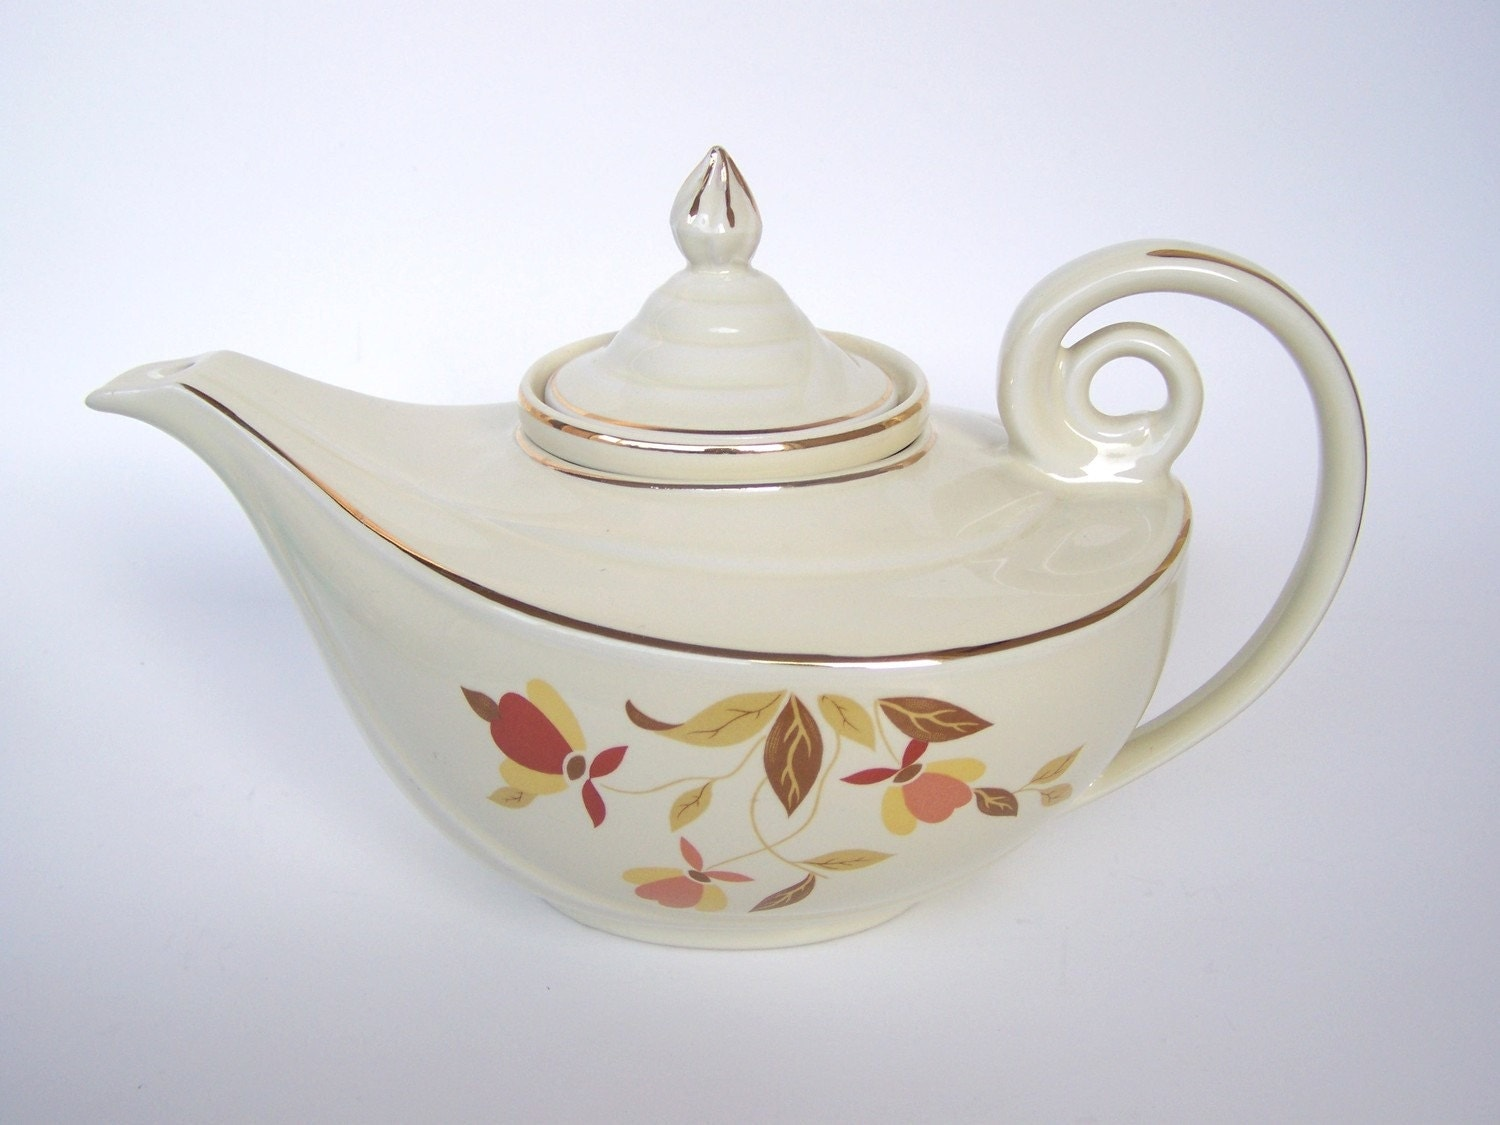 1940s Halls Superior Ceramic Flower And Leaves Teapot By